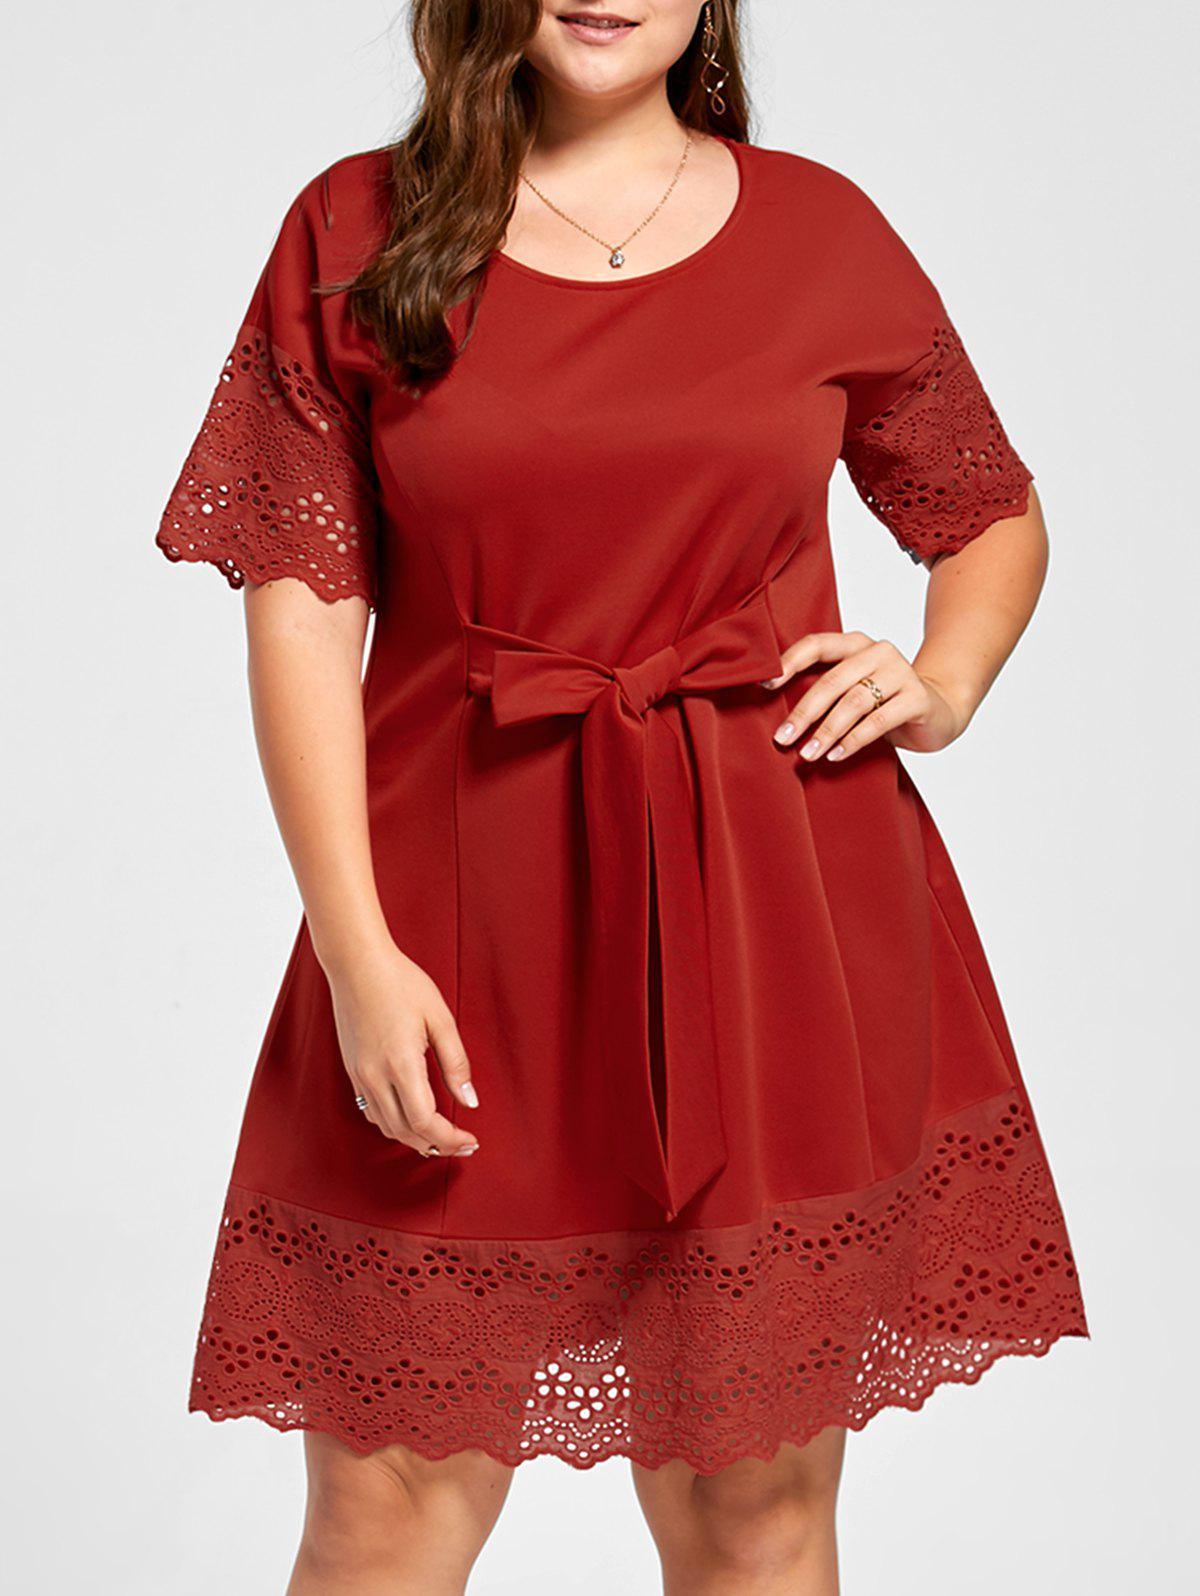 Plus Size Bowknot Embellished Broderie DressWOMEN<br><br>Size: 4XL; Color: RED; Style: Brief; Material: Polyester; Silhouette: A-Line; Dresses Length: Knee-Length; Neckline: Round Collar; Sleeve Length: Short Sleeves; Pattern Type: Solid Color; With Belt: No; Season: Fall,Spring,Summer; Weight: 0.4400kg; Package Contents: 1 x Dress;